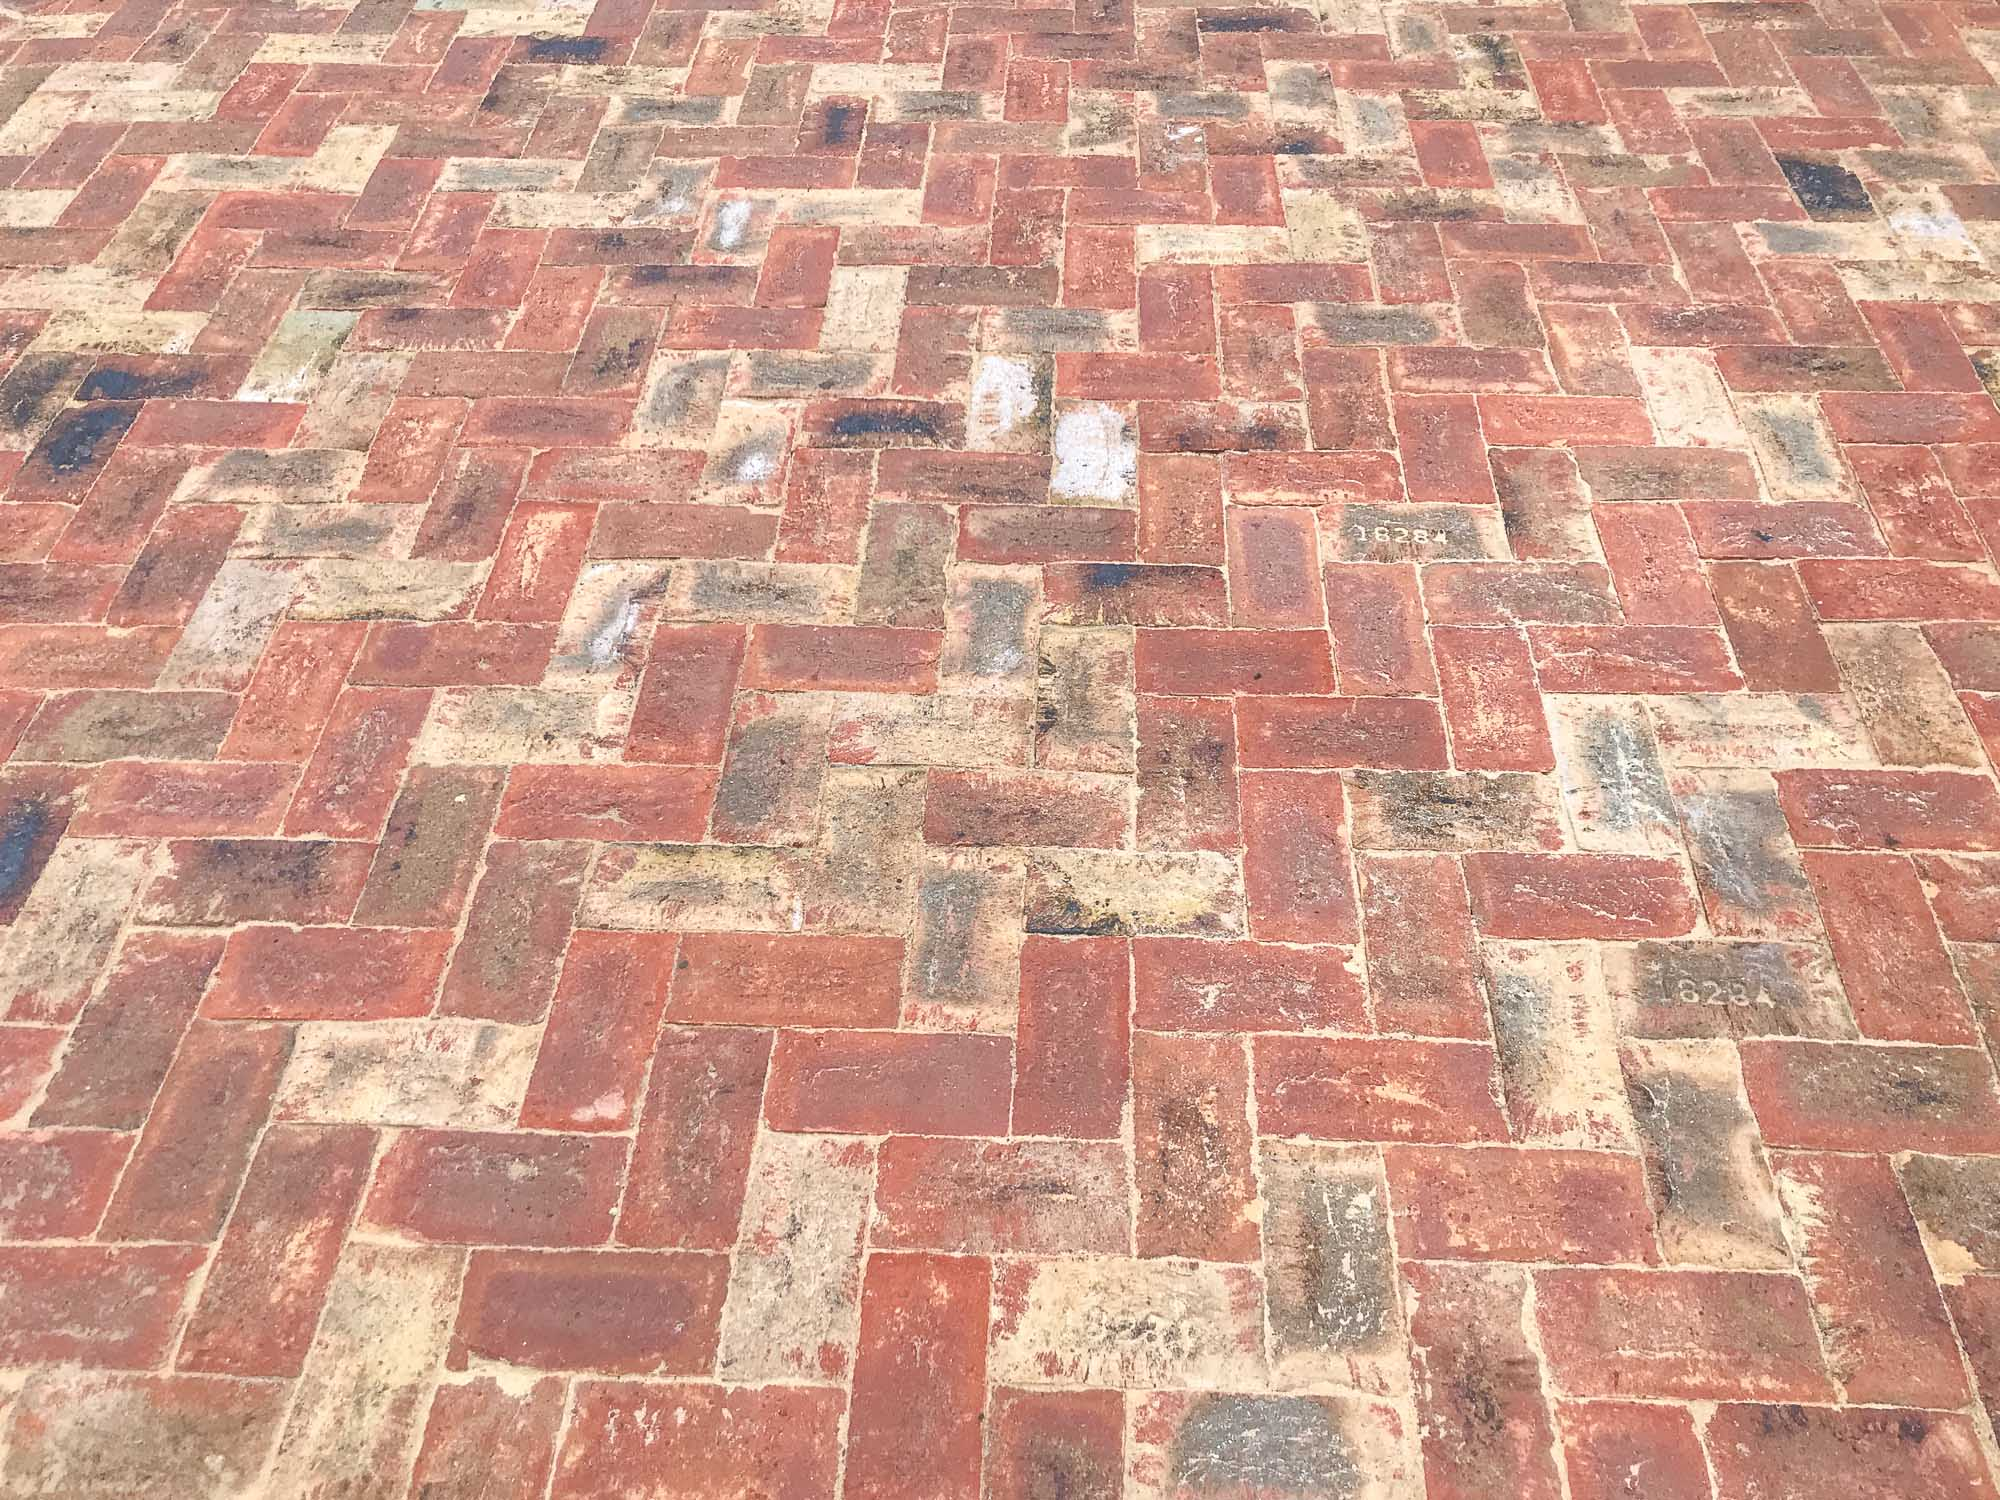 The mix of red, buff and black/blue colours in this brick patio creates a mottled pattern which is a far cry from the rather stark appearance of modern paving setts